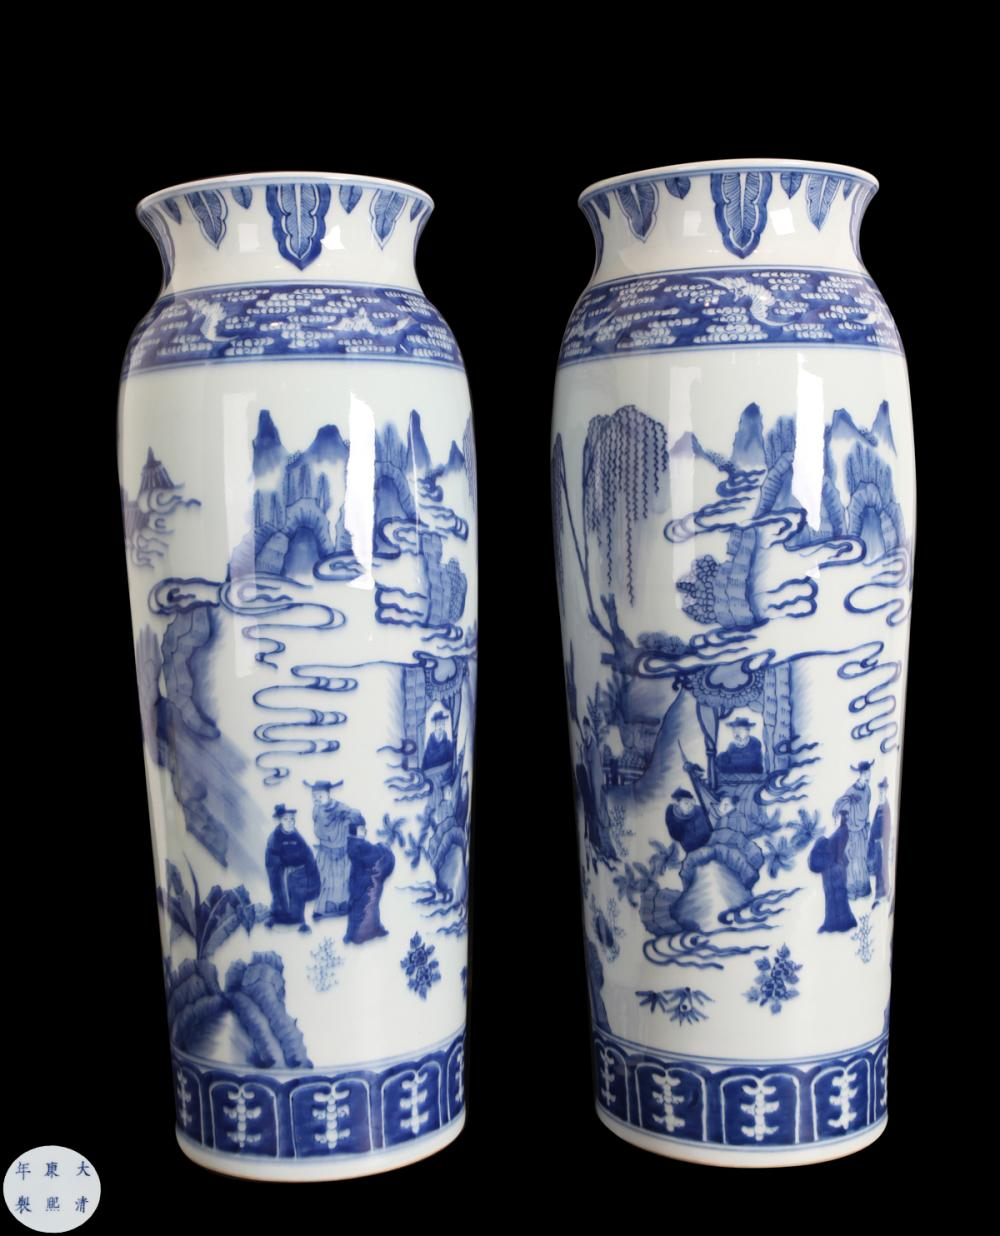 A PAIR OF BLUE & WHITE PORCELAIN VASES IN CHARACTER STORY DESIGN